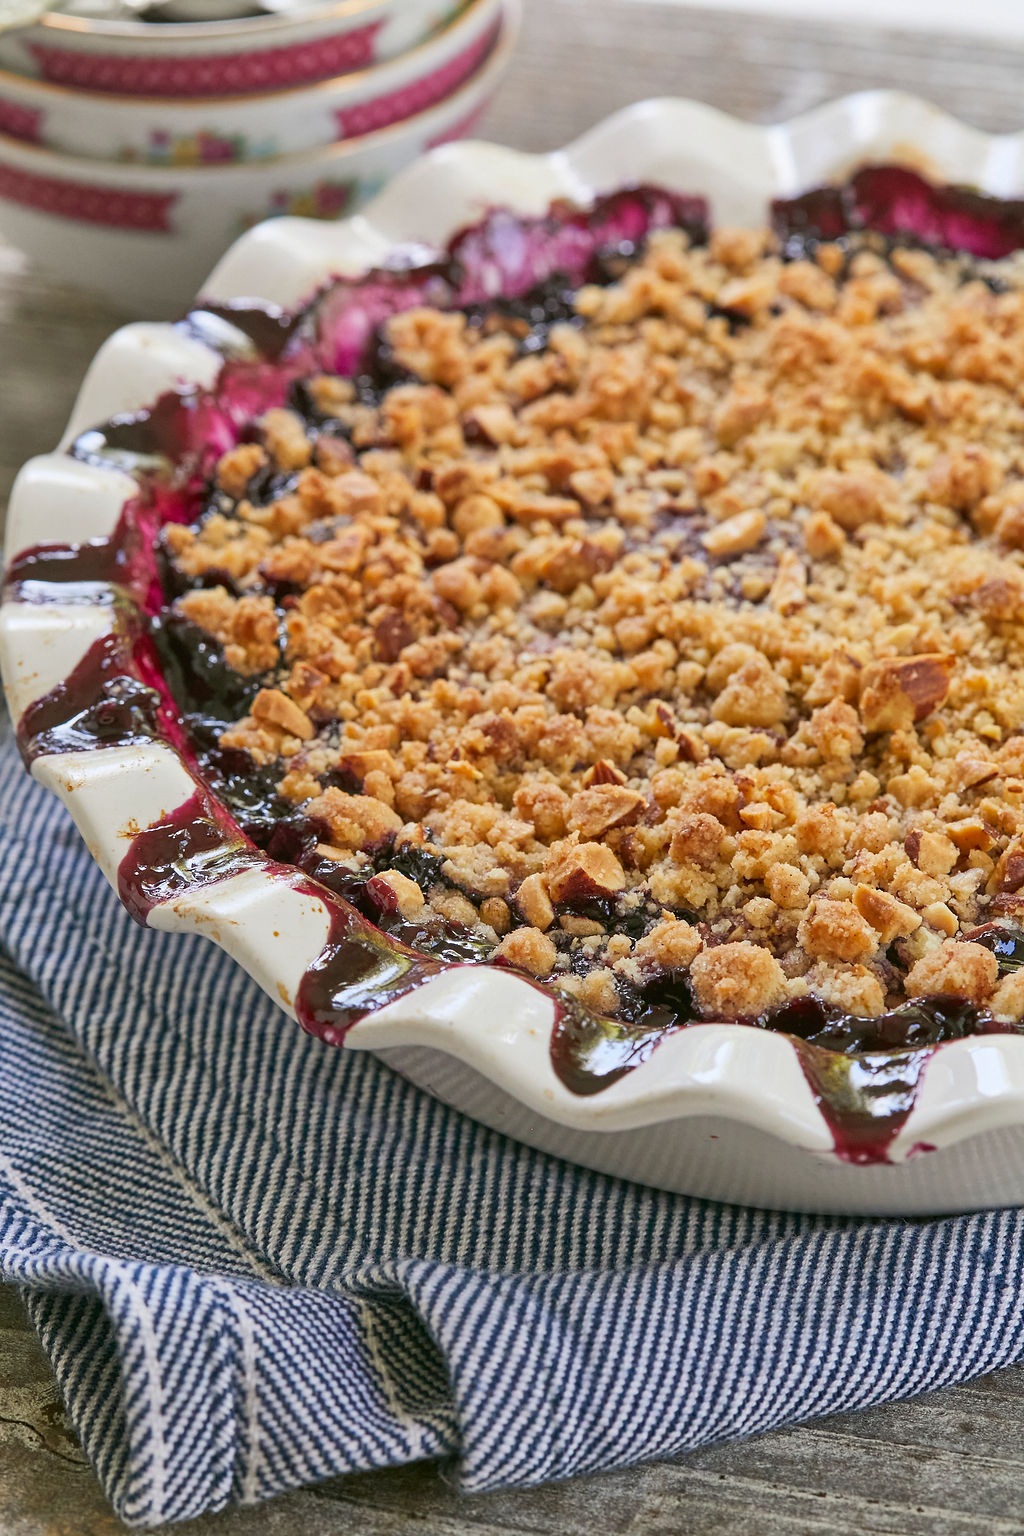 My finished Blueberry Crisp Recipe, with topping.